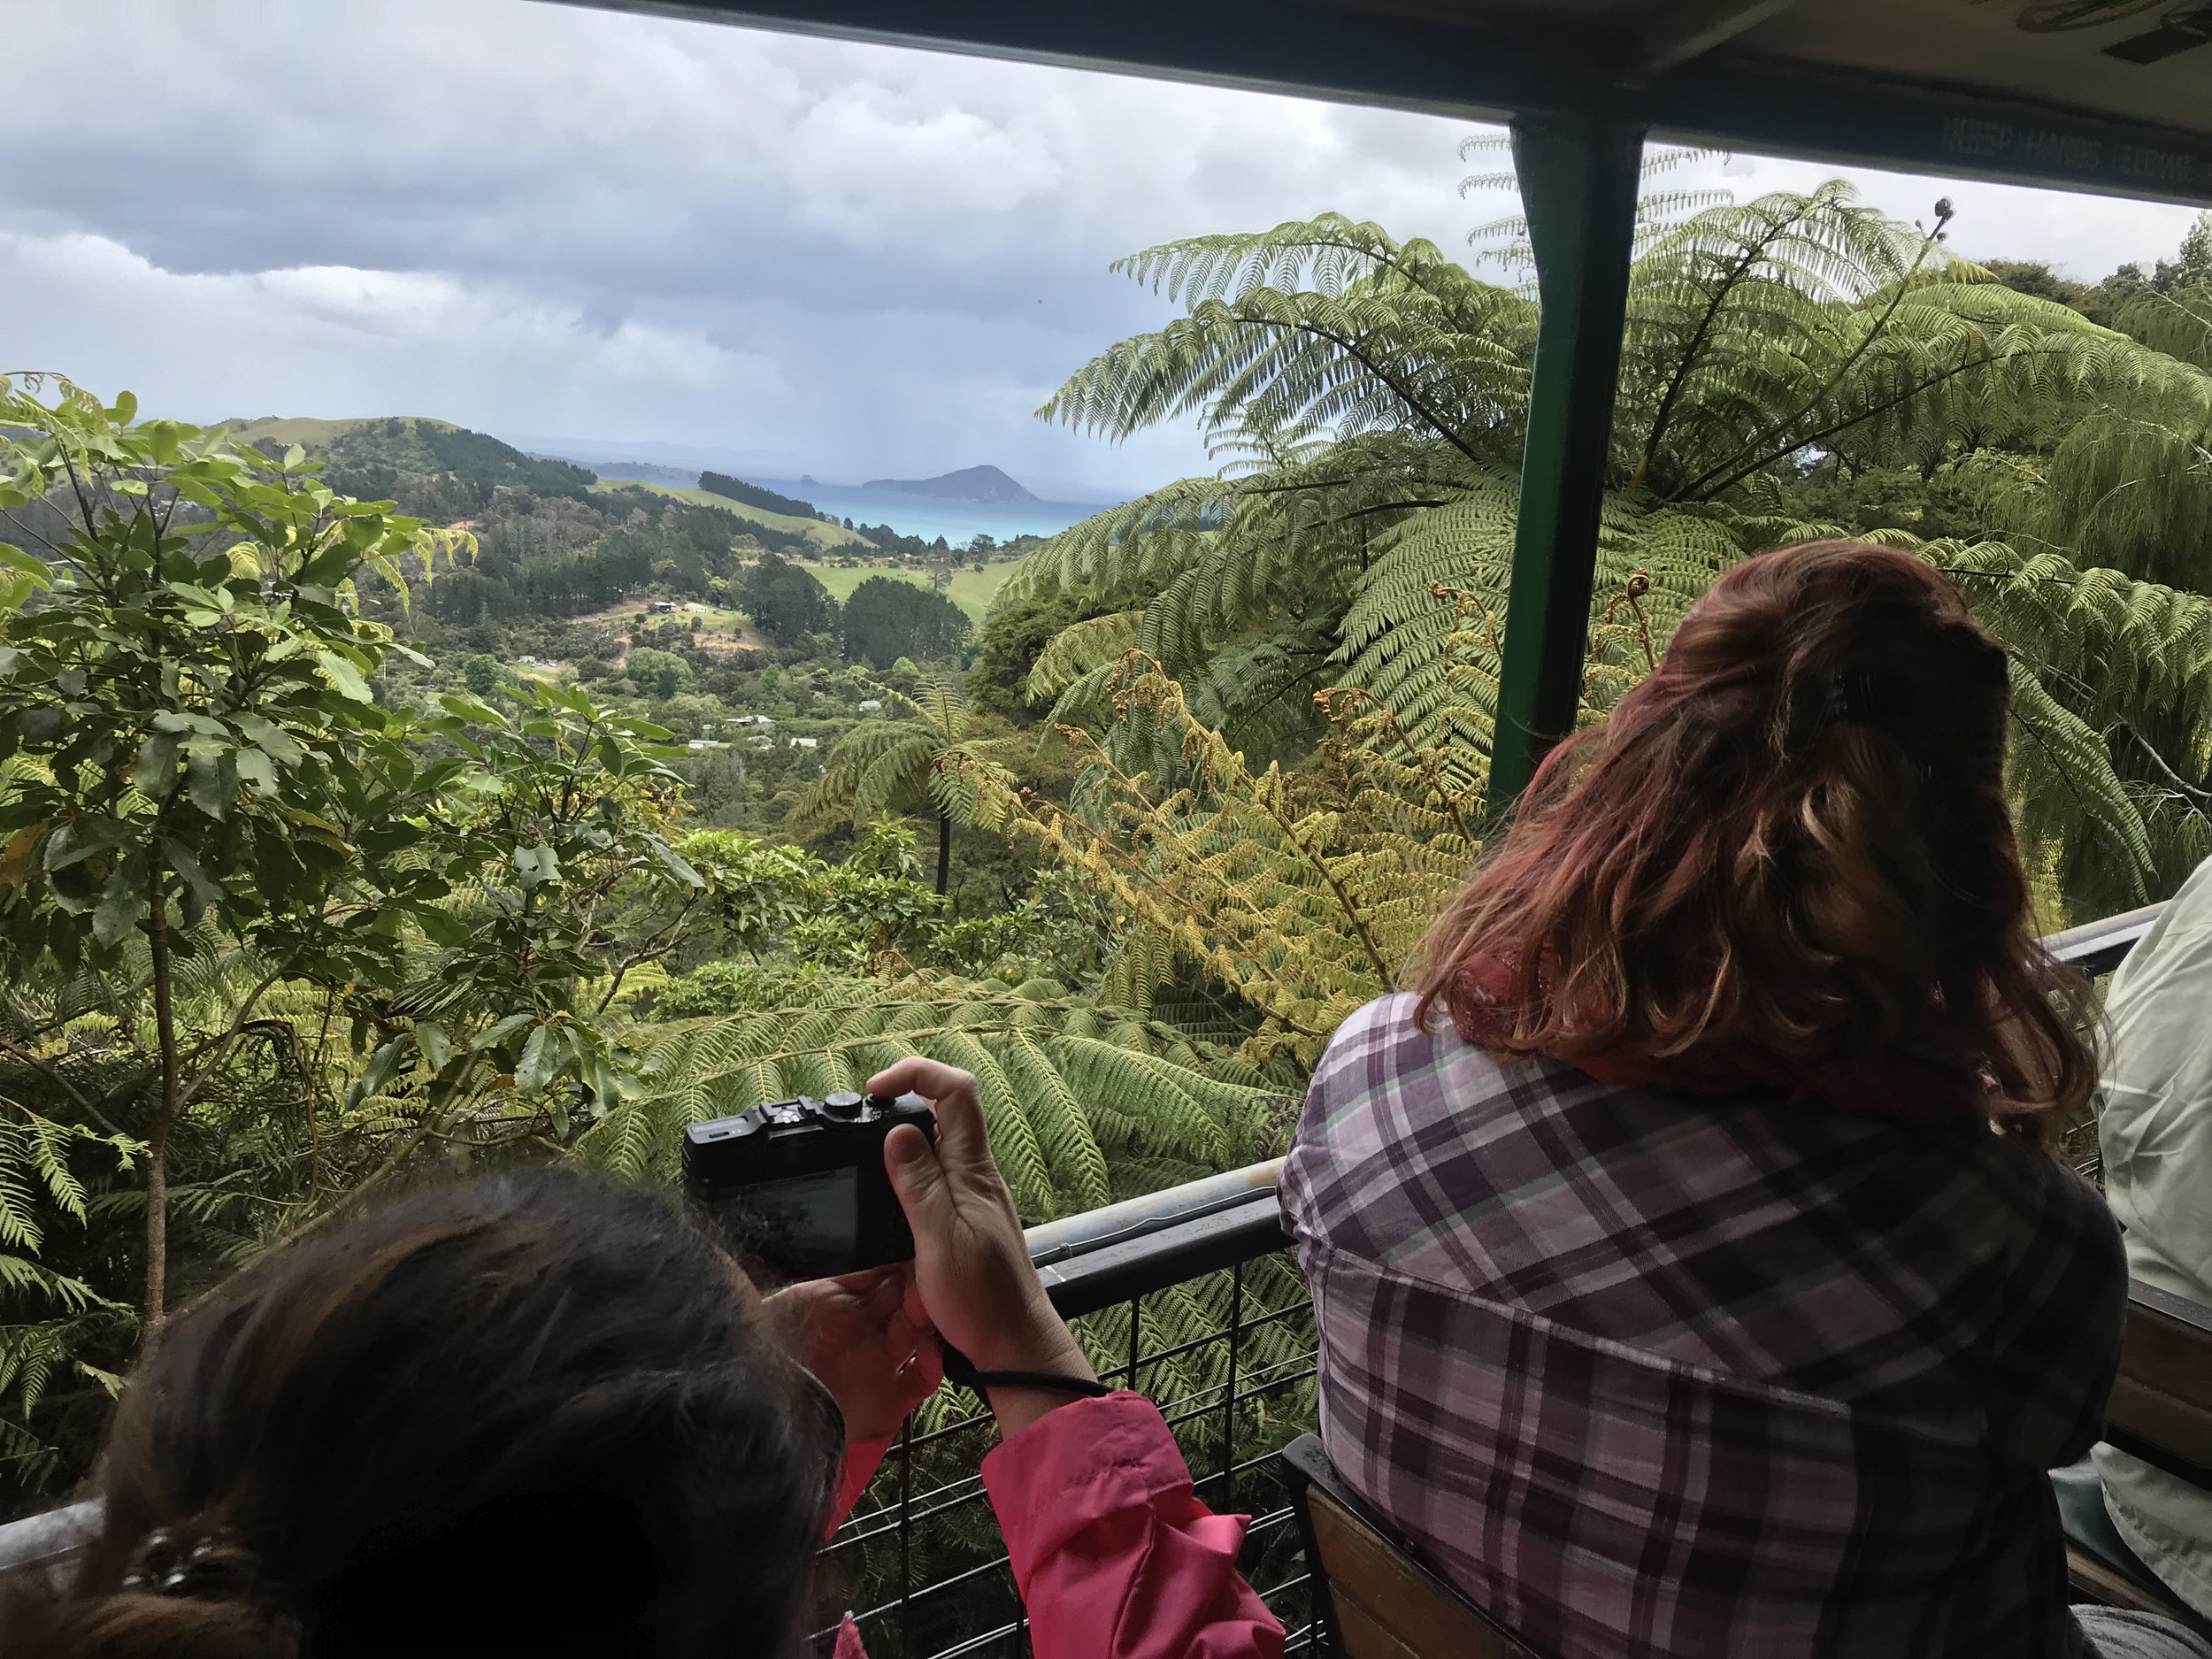 Enjoy the views at Driving Creek Railway as well as the non-existent pressure to buy anything!